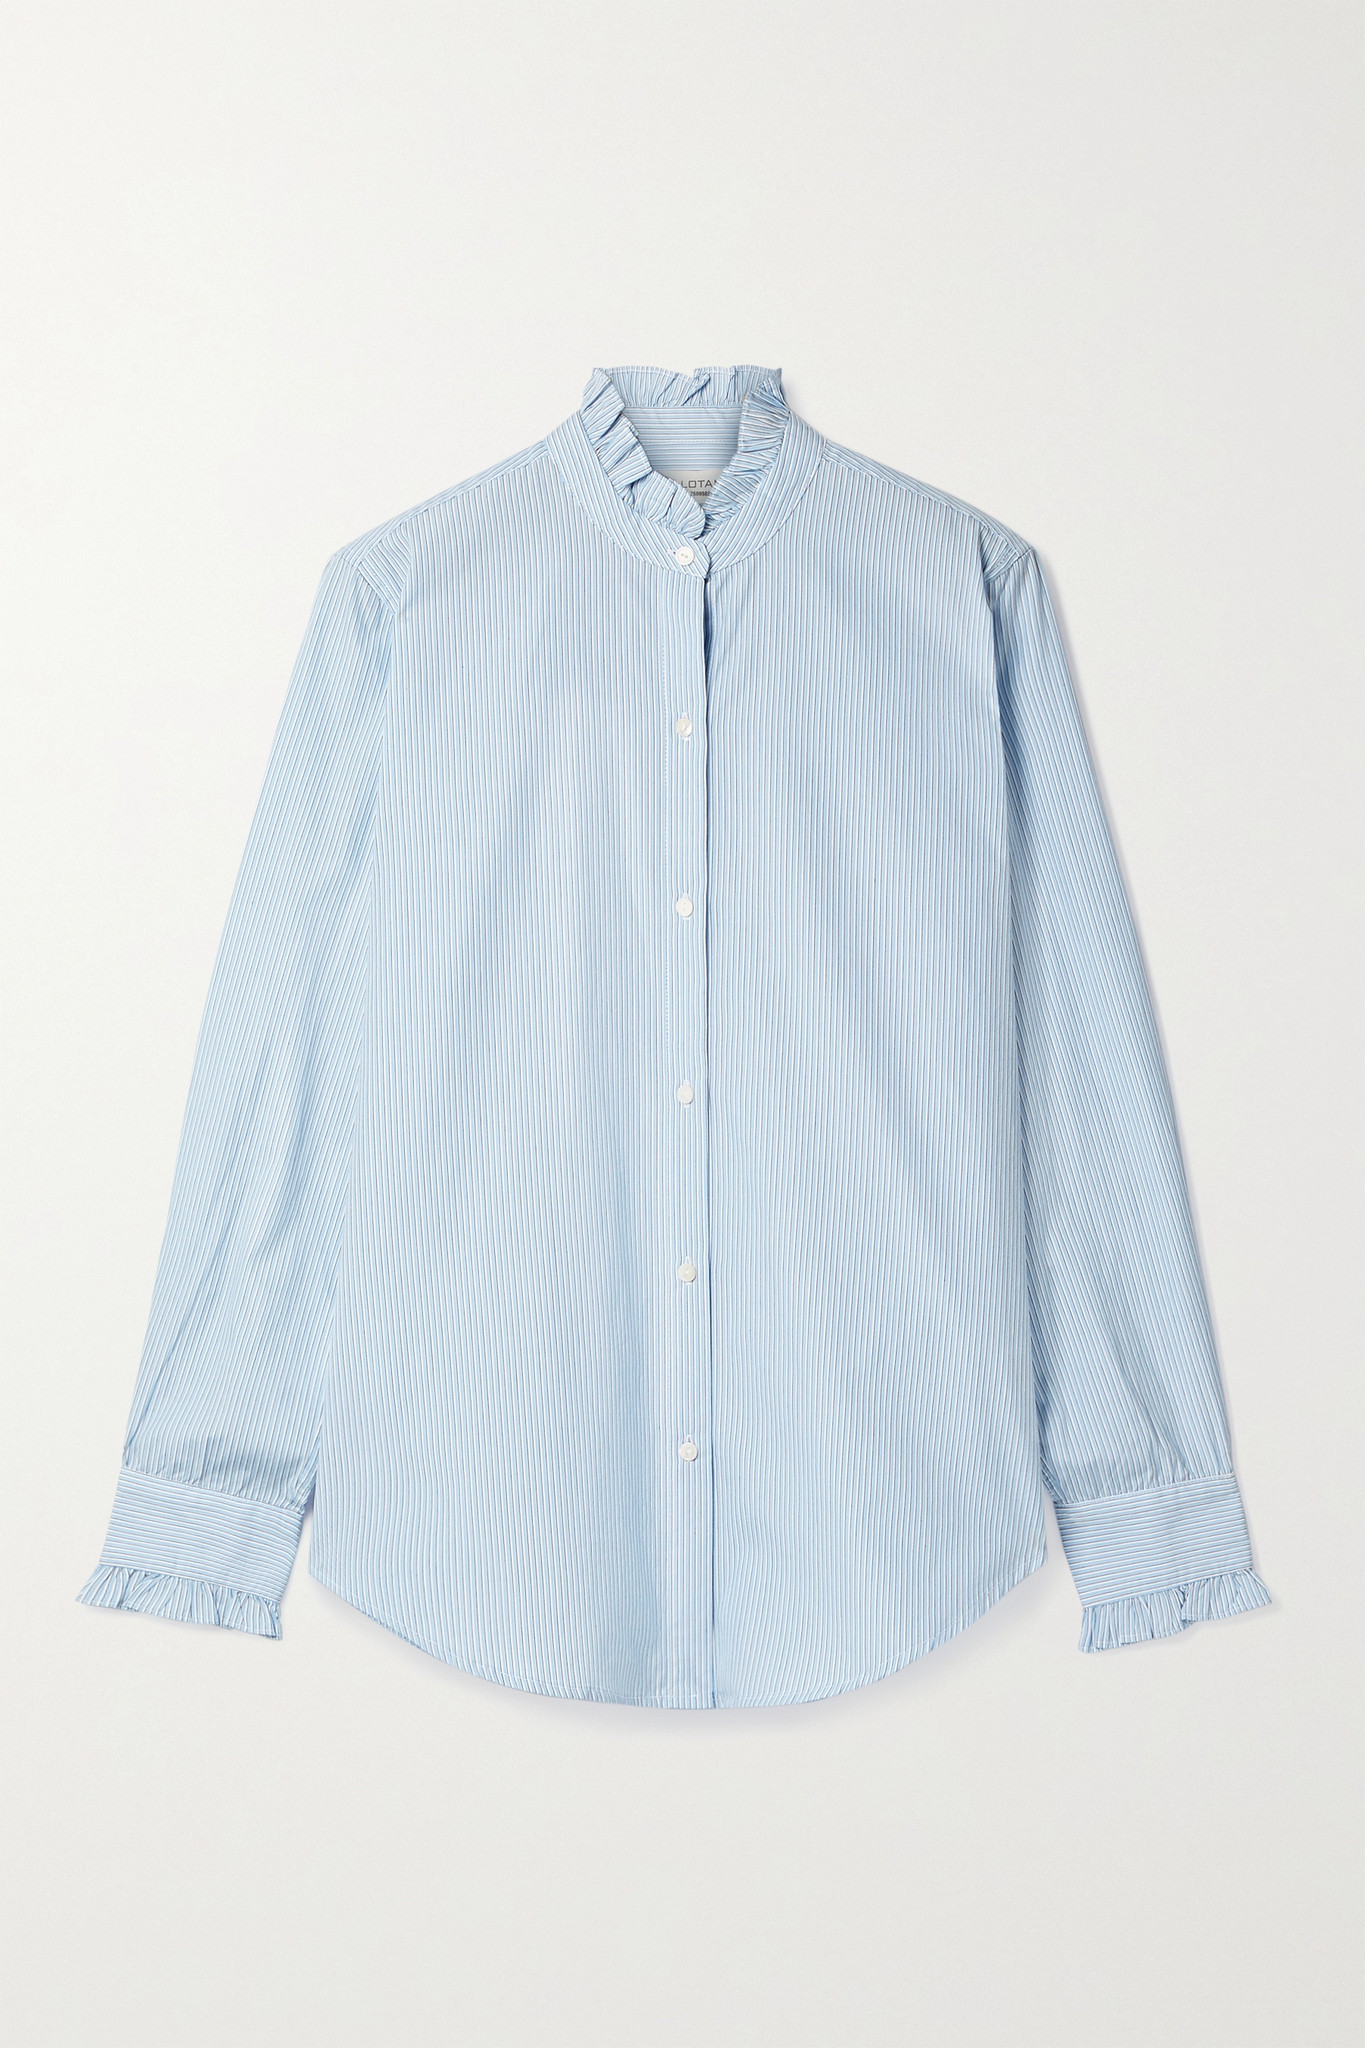 NILI LOTAN - Lydia Ruffled Striped Cotton-poplin Shirt - Blue - large